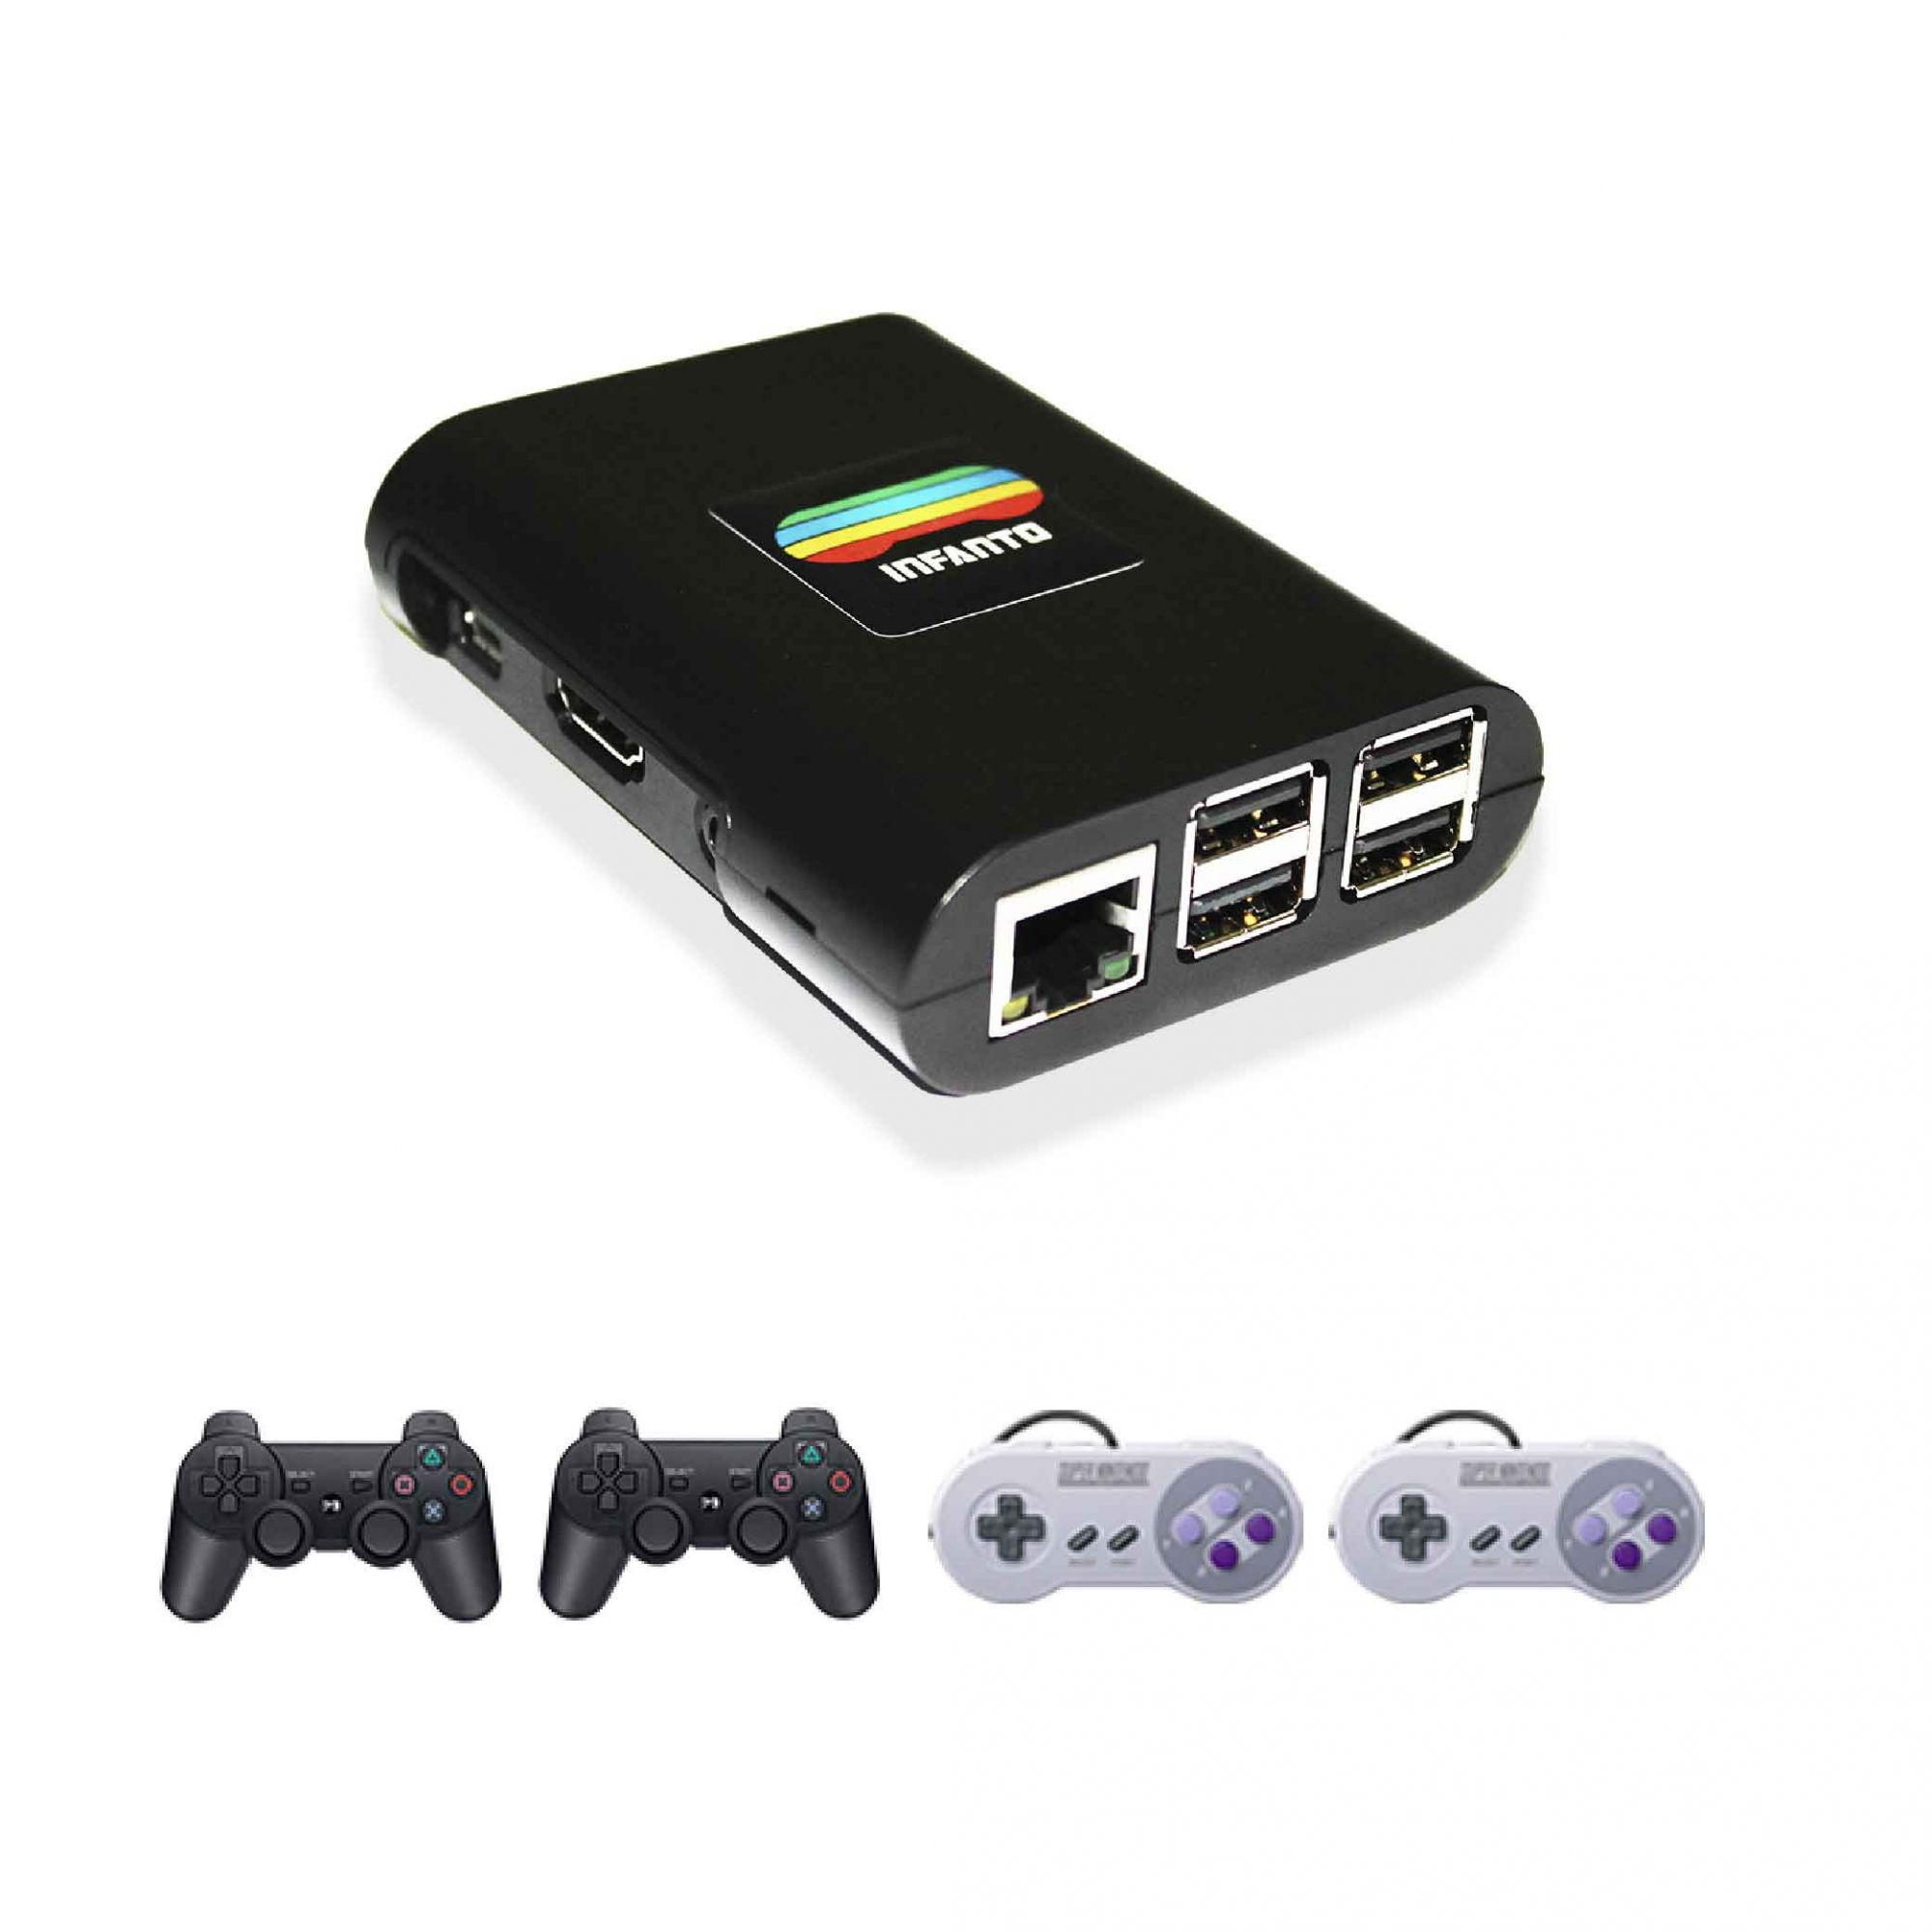 Combo Infanto 3 - Video Game Console retrô com 20 mil jogos antigos (4 controles)